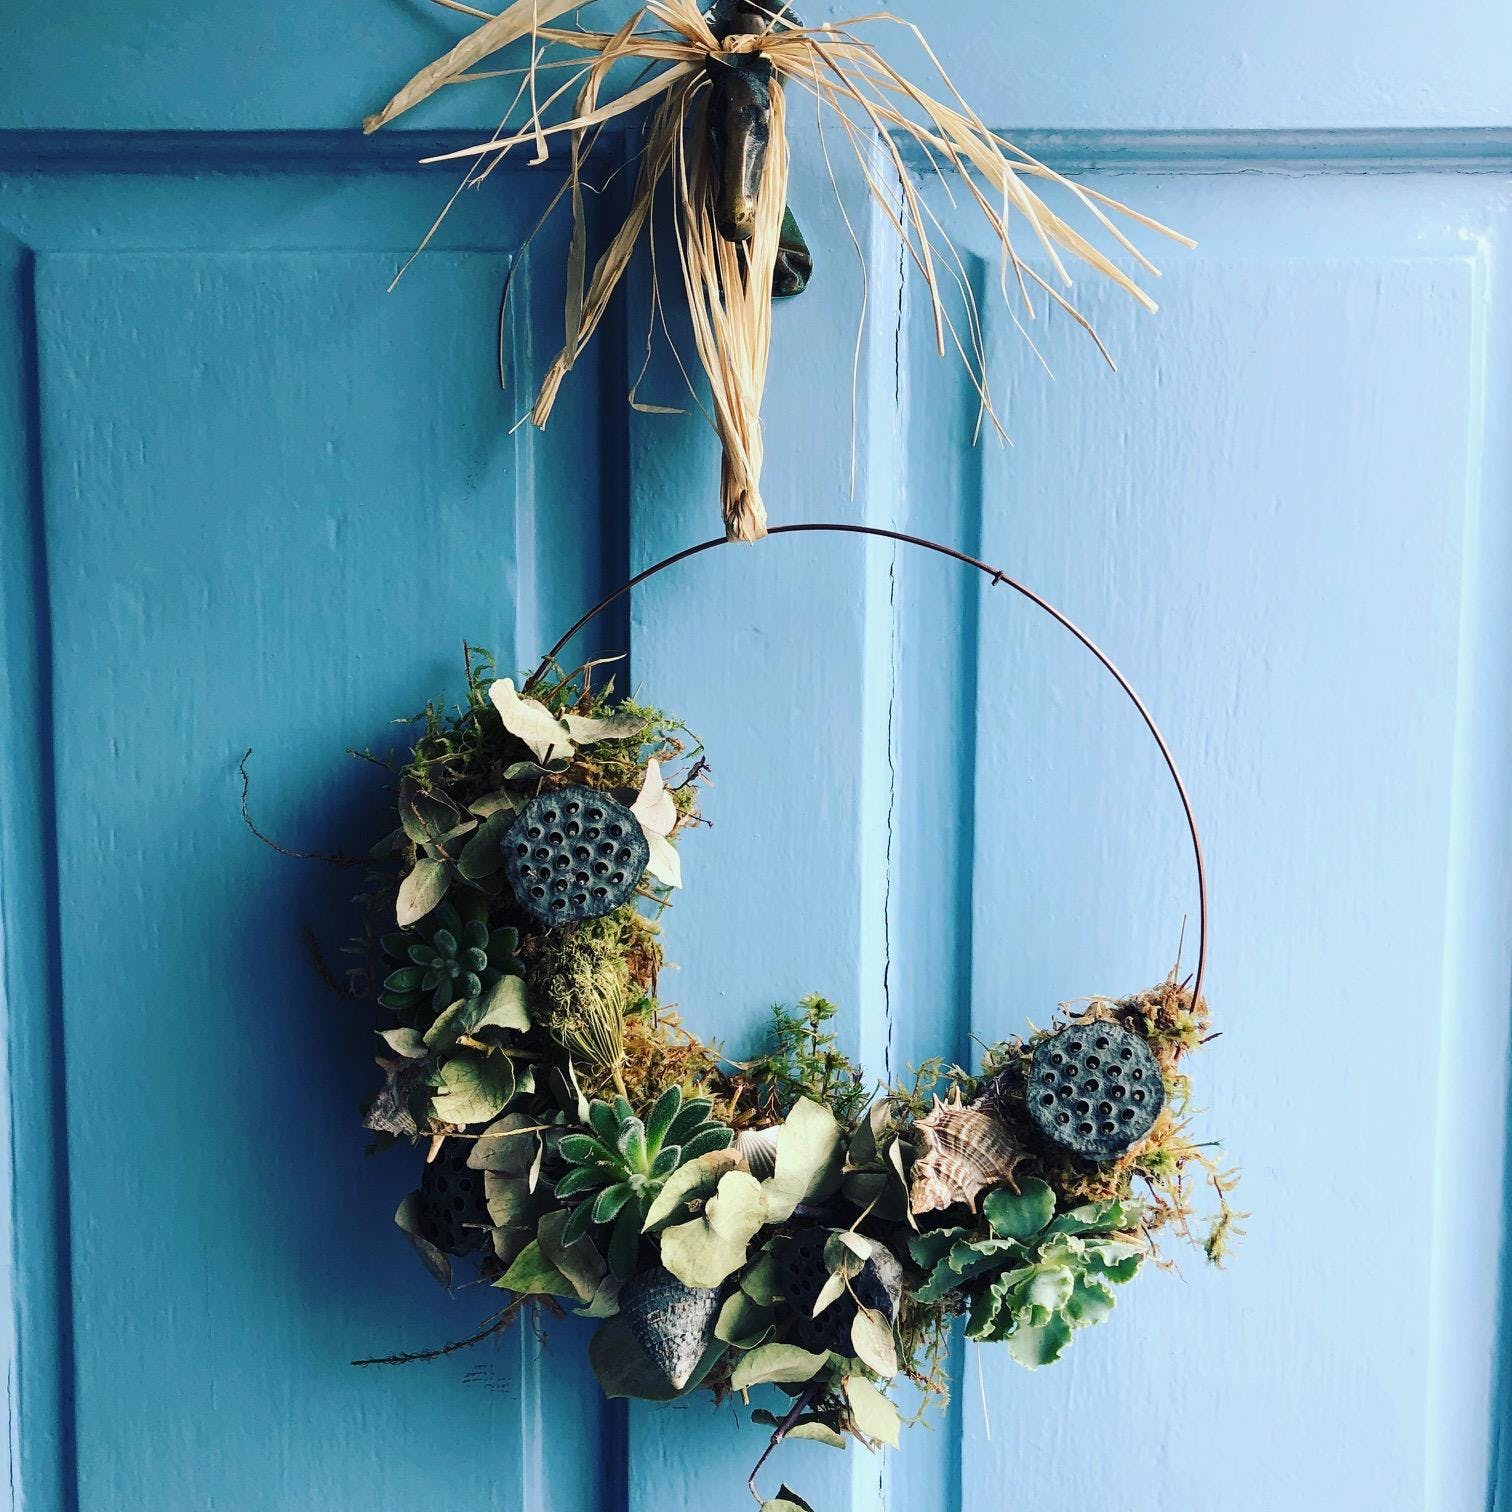 Year around Living wreath making with succulents